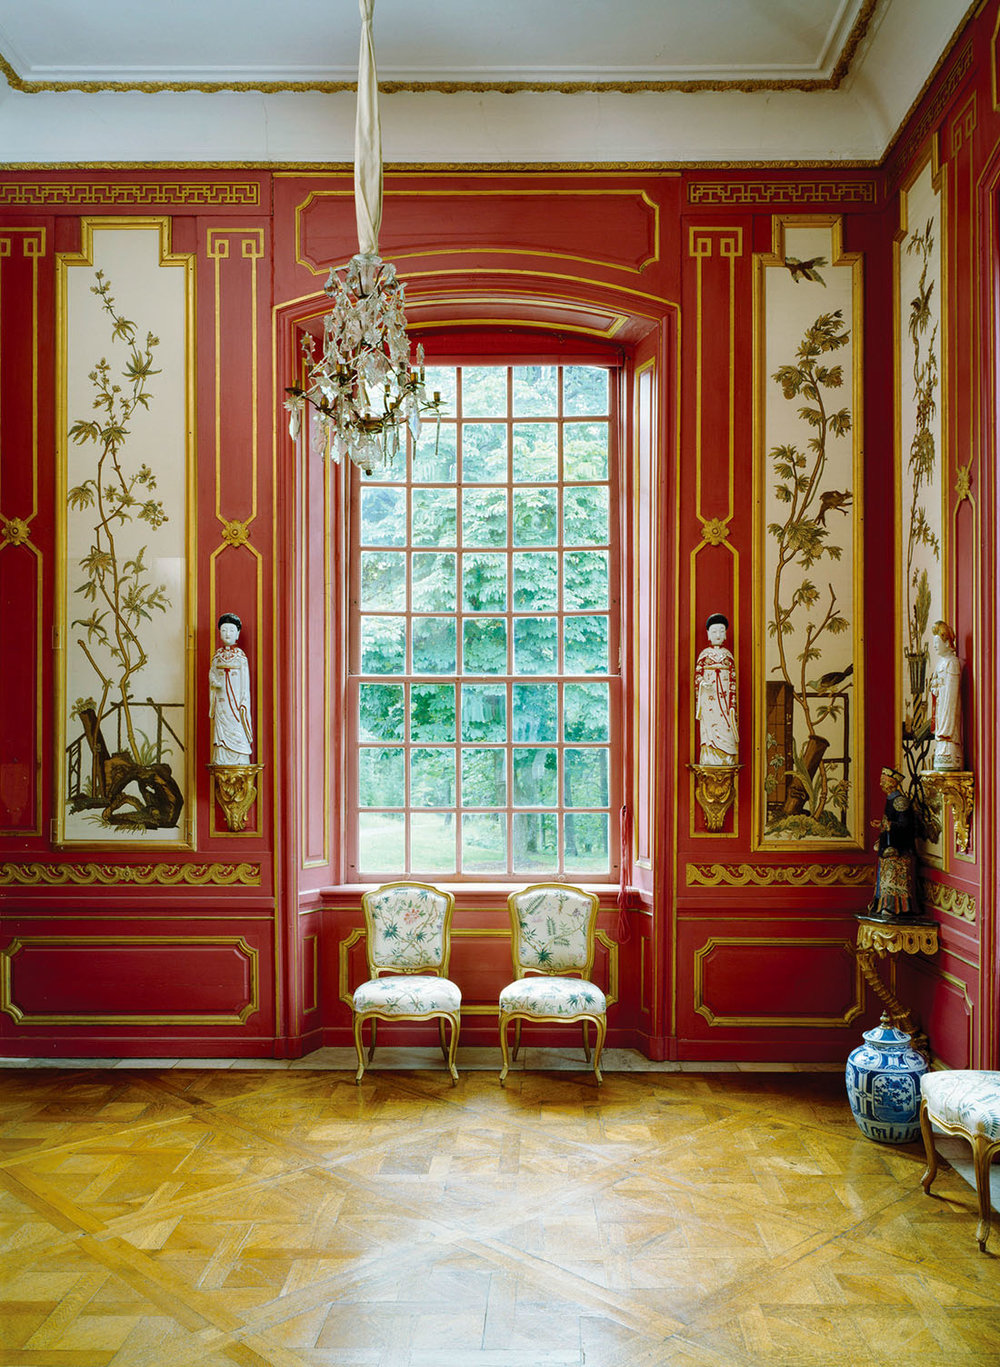 The porcelain, silks, lacquers and other luxury items shown in this red room in the Chinese Pavilion were all brought to Sweden from China. Photo courtesy of Swedish Royal Court